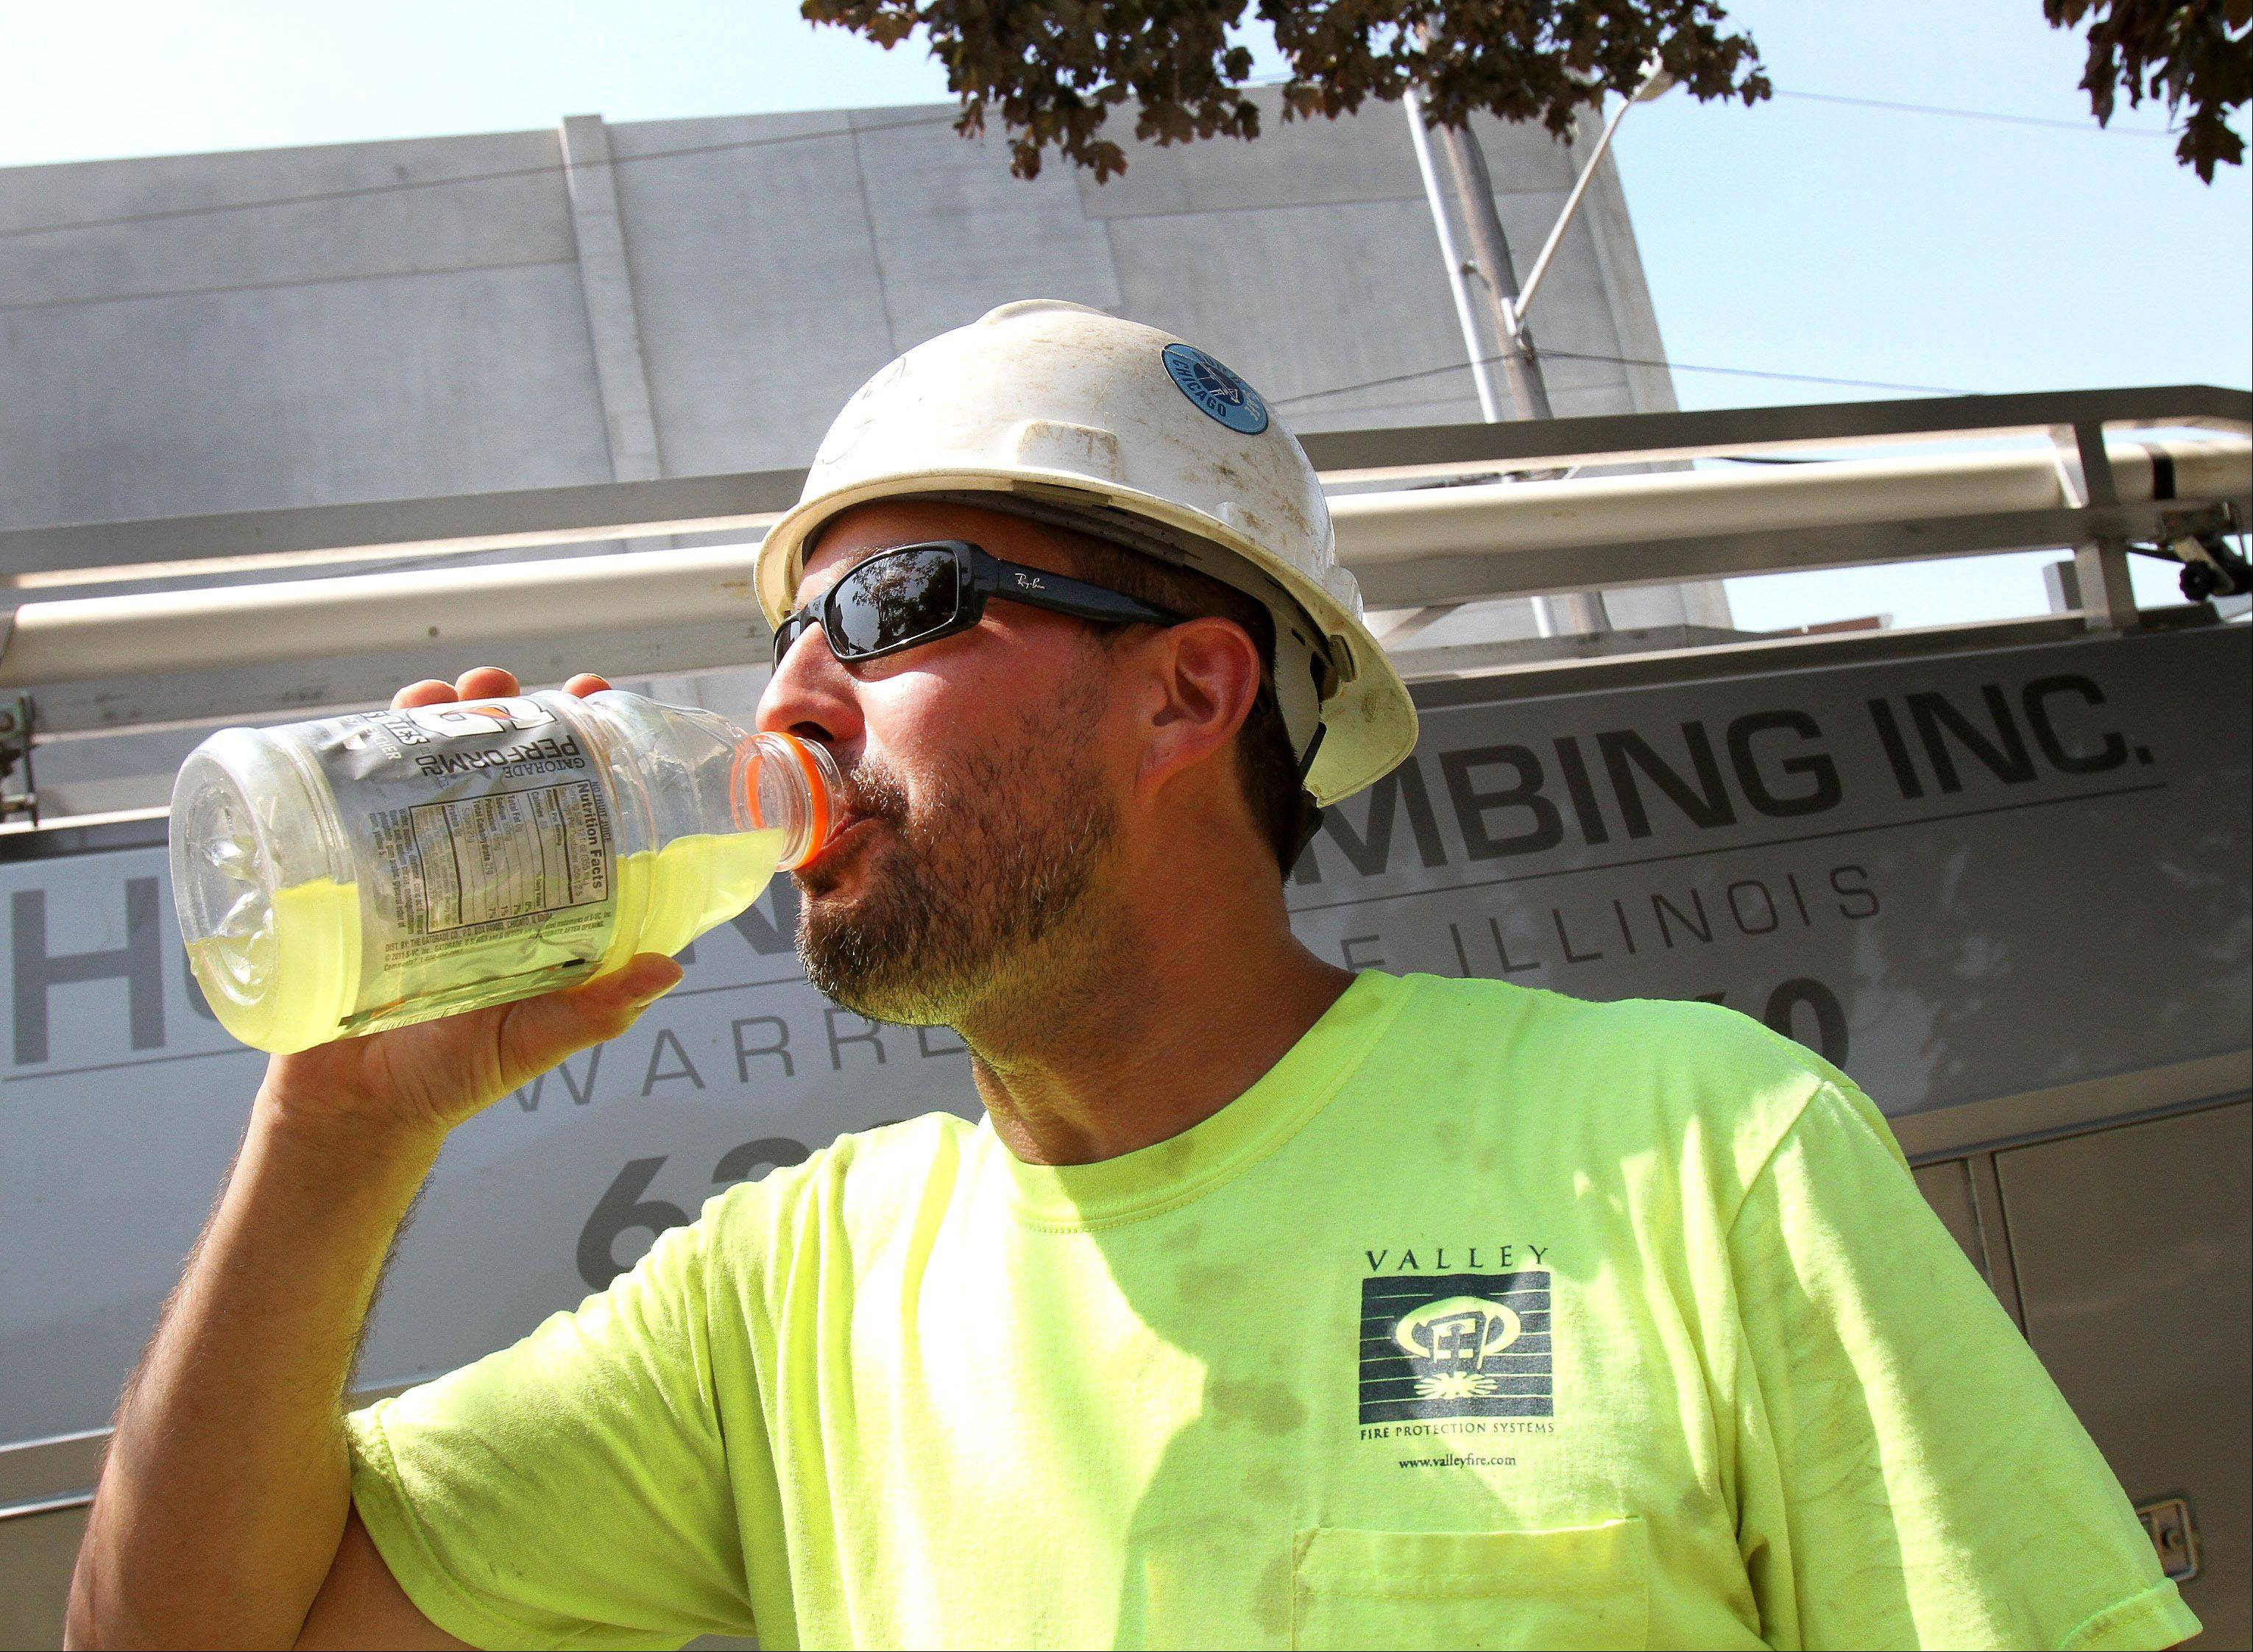 "Chuck Arwood of Hogan Plumbing takes a drink during a break on Thursday at a Naperville construction site. ""We try to start early and get done early."" he said of working on very hot days."